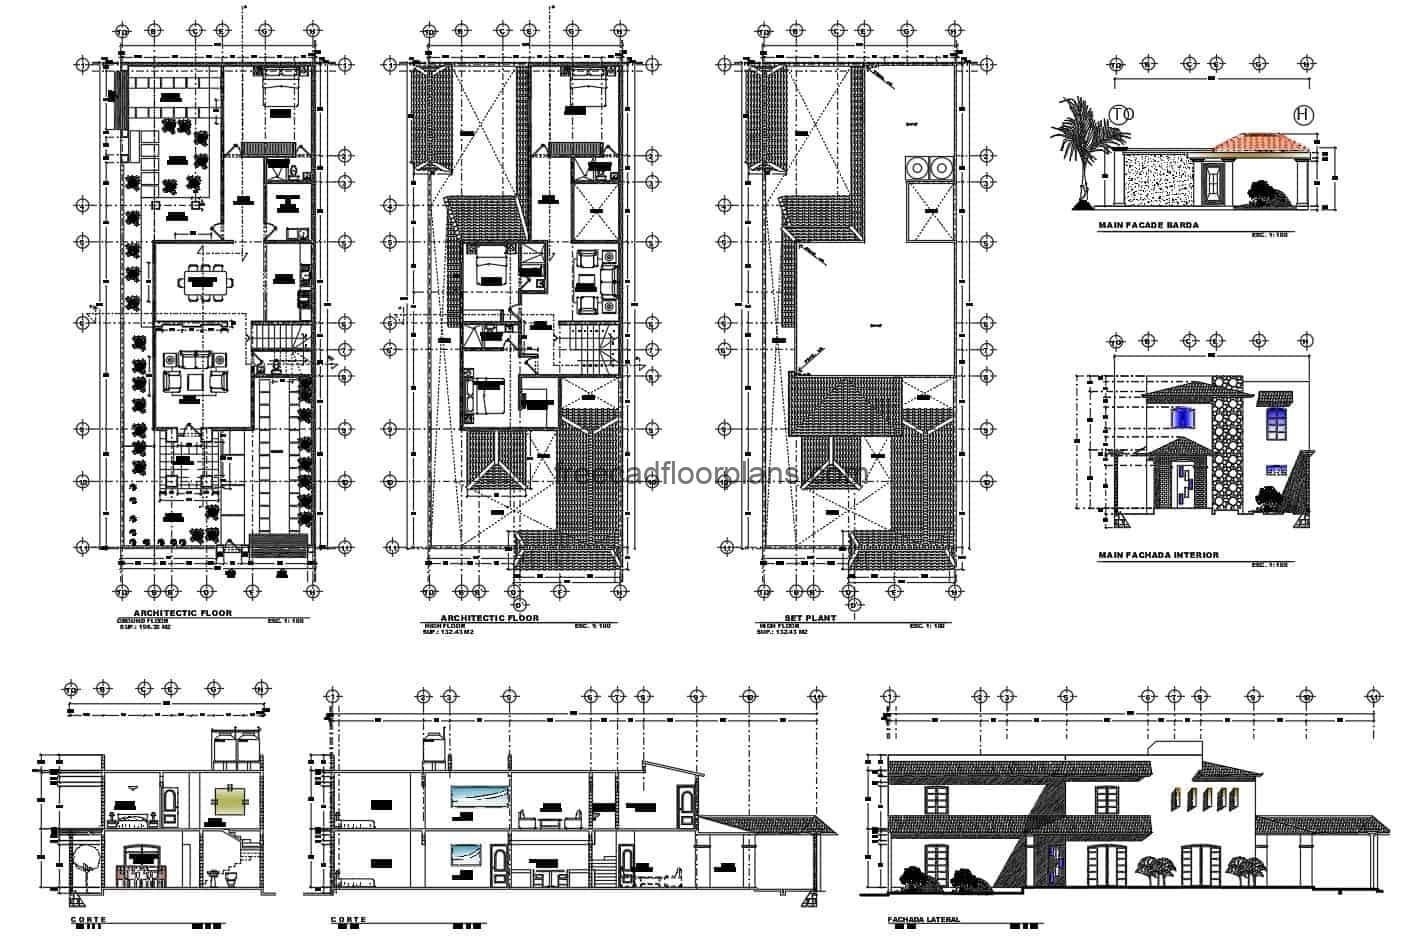 DWG file for free download with drawing and complete plans of a two-level house with four rooms.